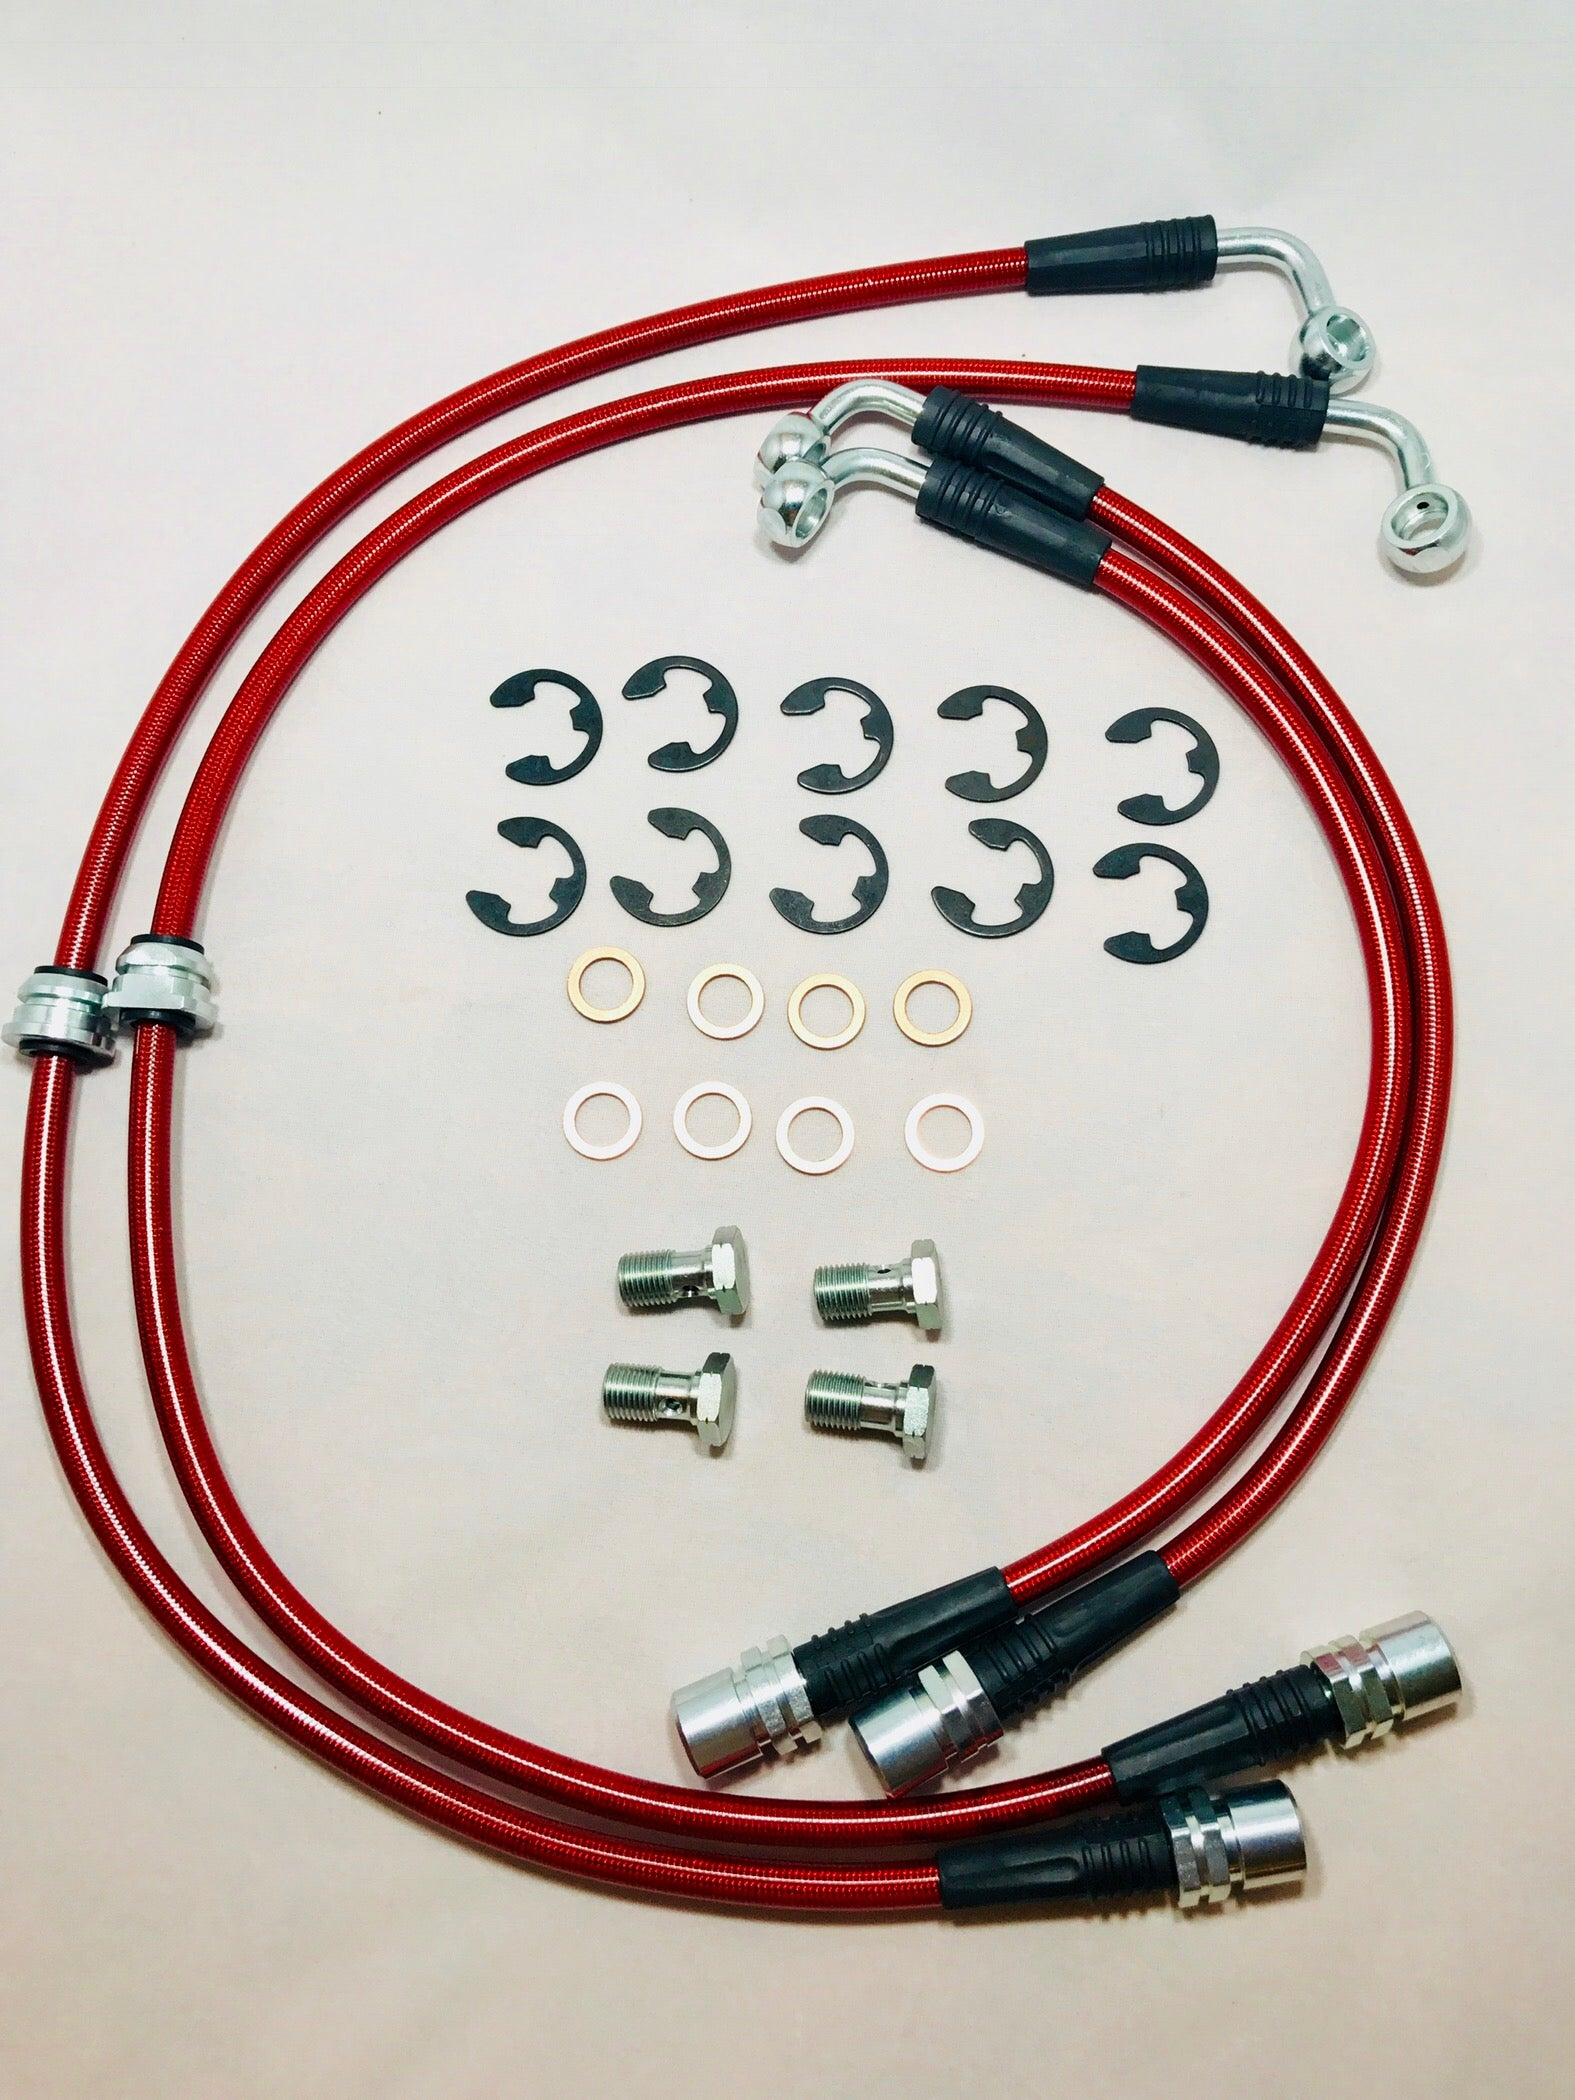 Tesla Model S stainless brake lines red